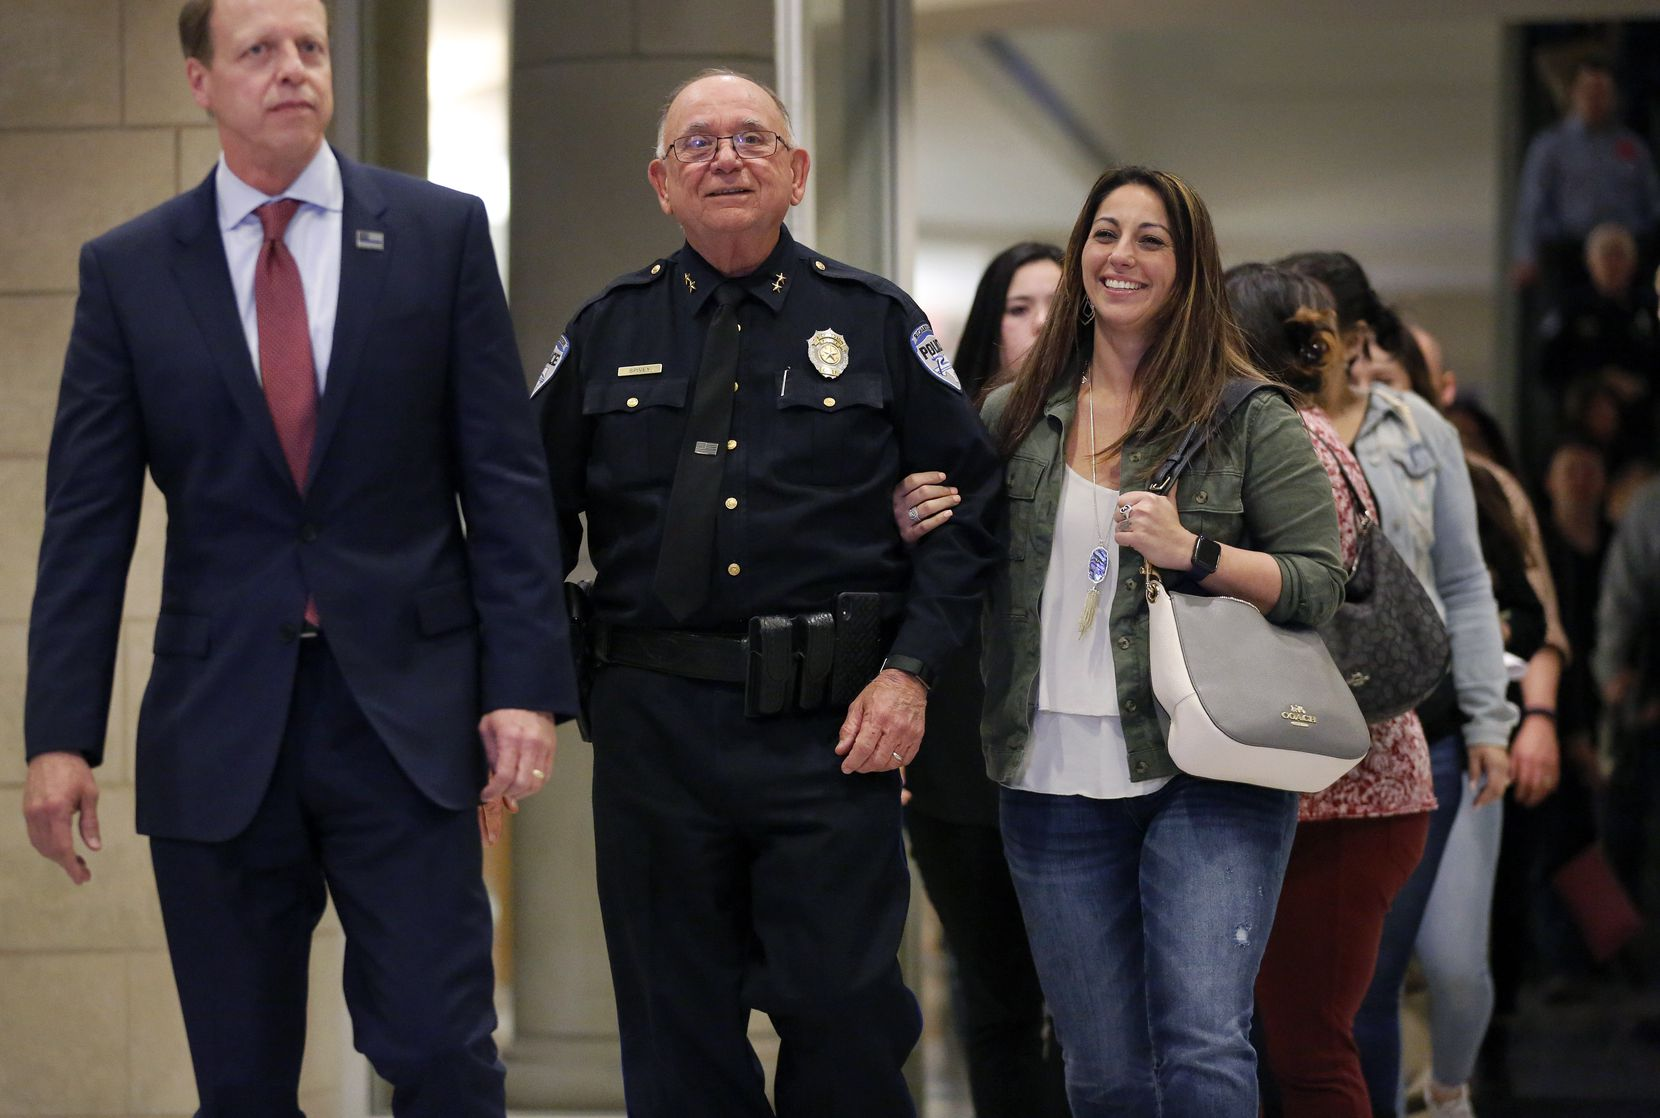 Collin County District Attorney Greg Willis (from left), Richardson Police Chief Jimmy Spivey and Nicole Sherrard, widow of slain police Officer David Sherrard, leave the Collin County Courthouse at the end of sentencing proceedings for Brandon McCall.